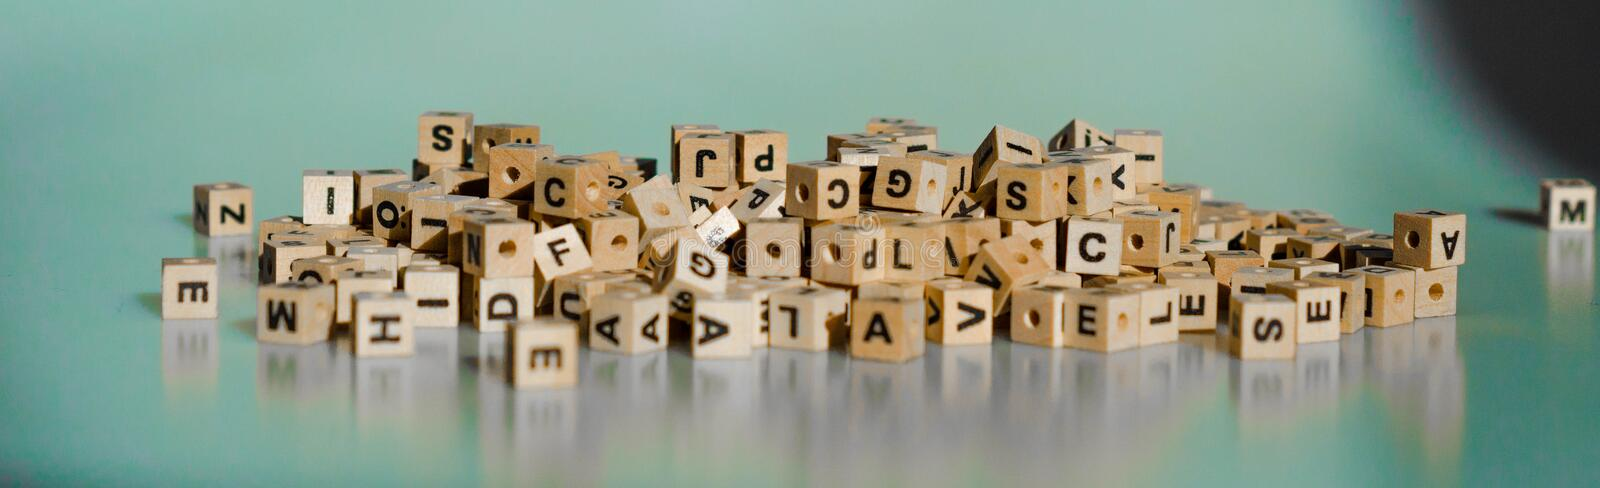 Letter Cubes royalty free stock photos